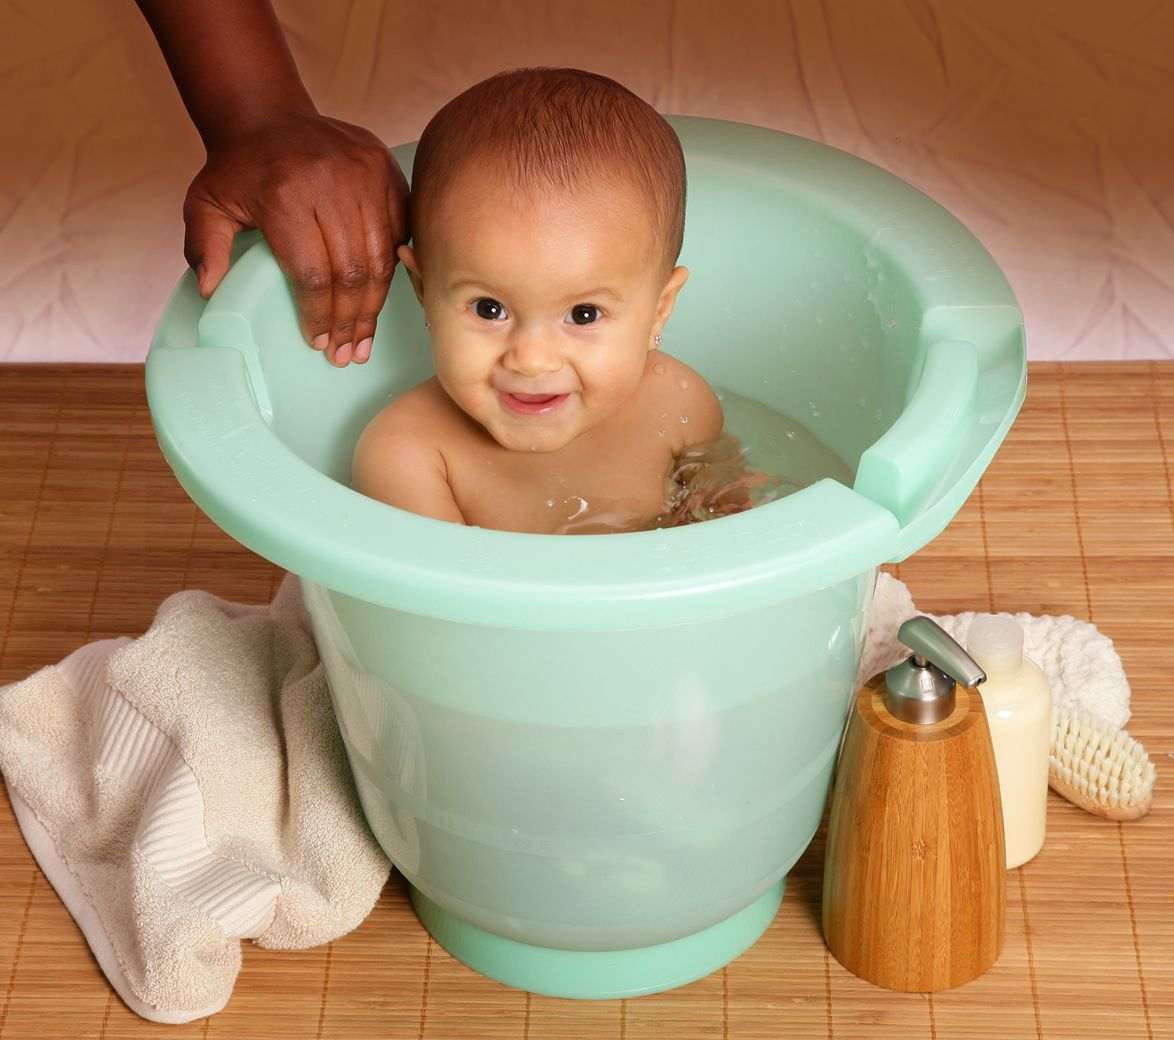 People Can't Handle How Cute These Baby Spa Photos Are ... |Spa For Baby